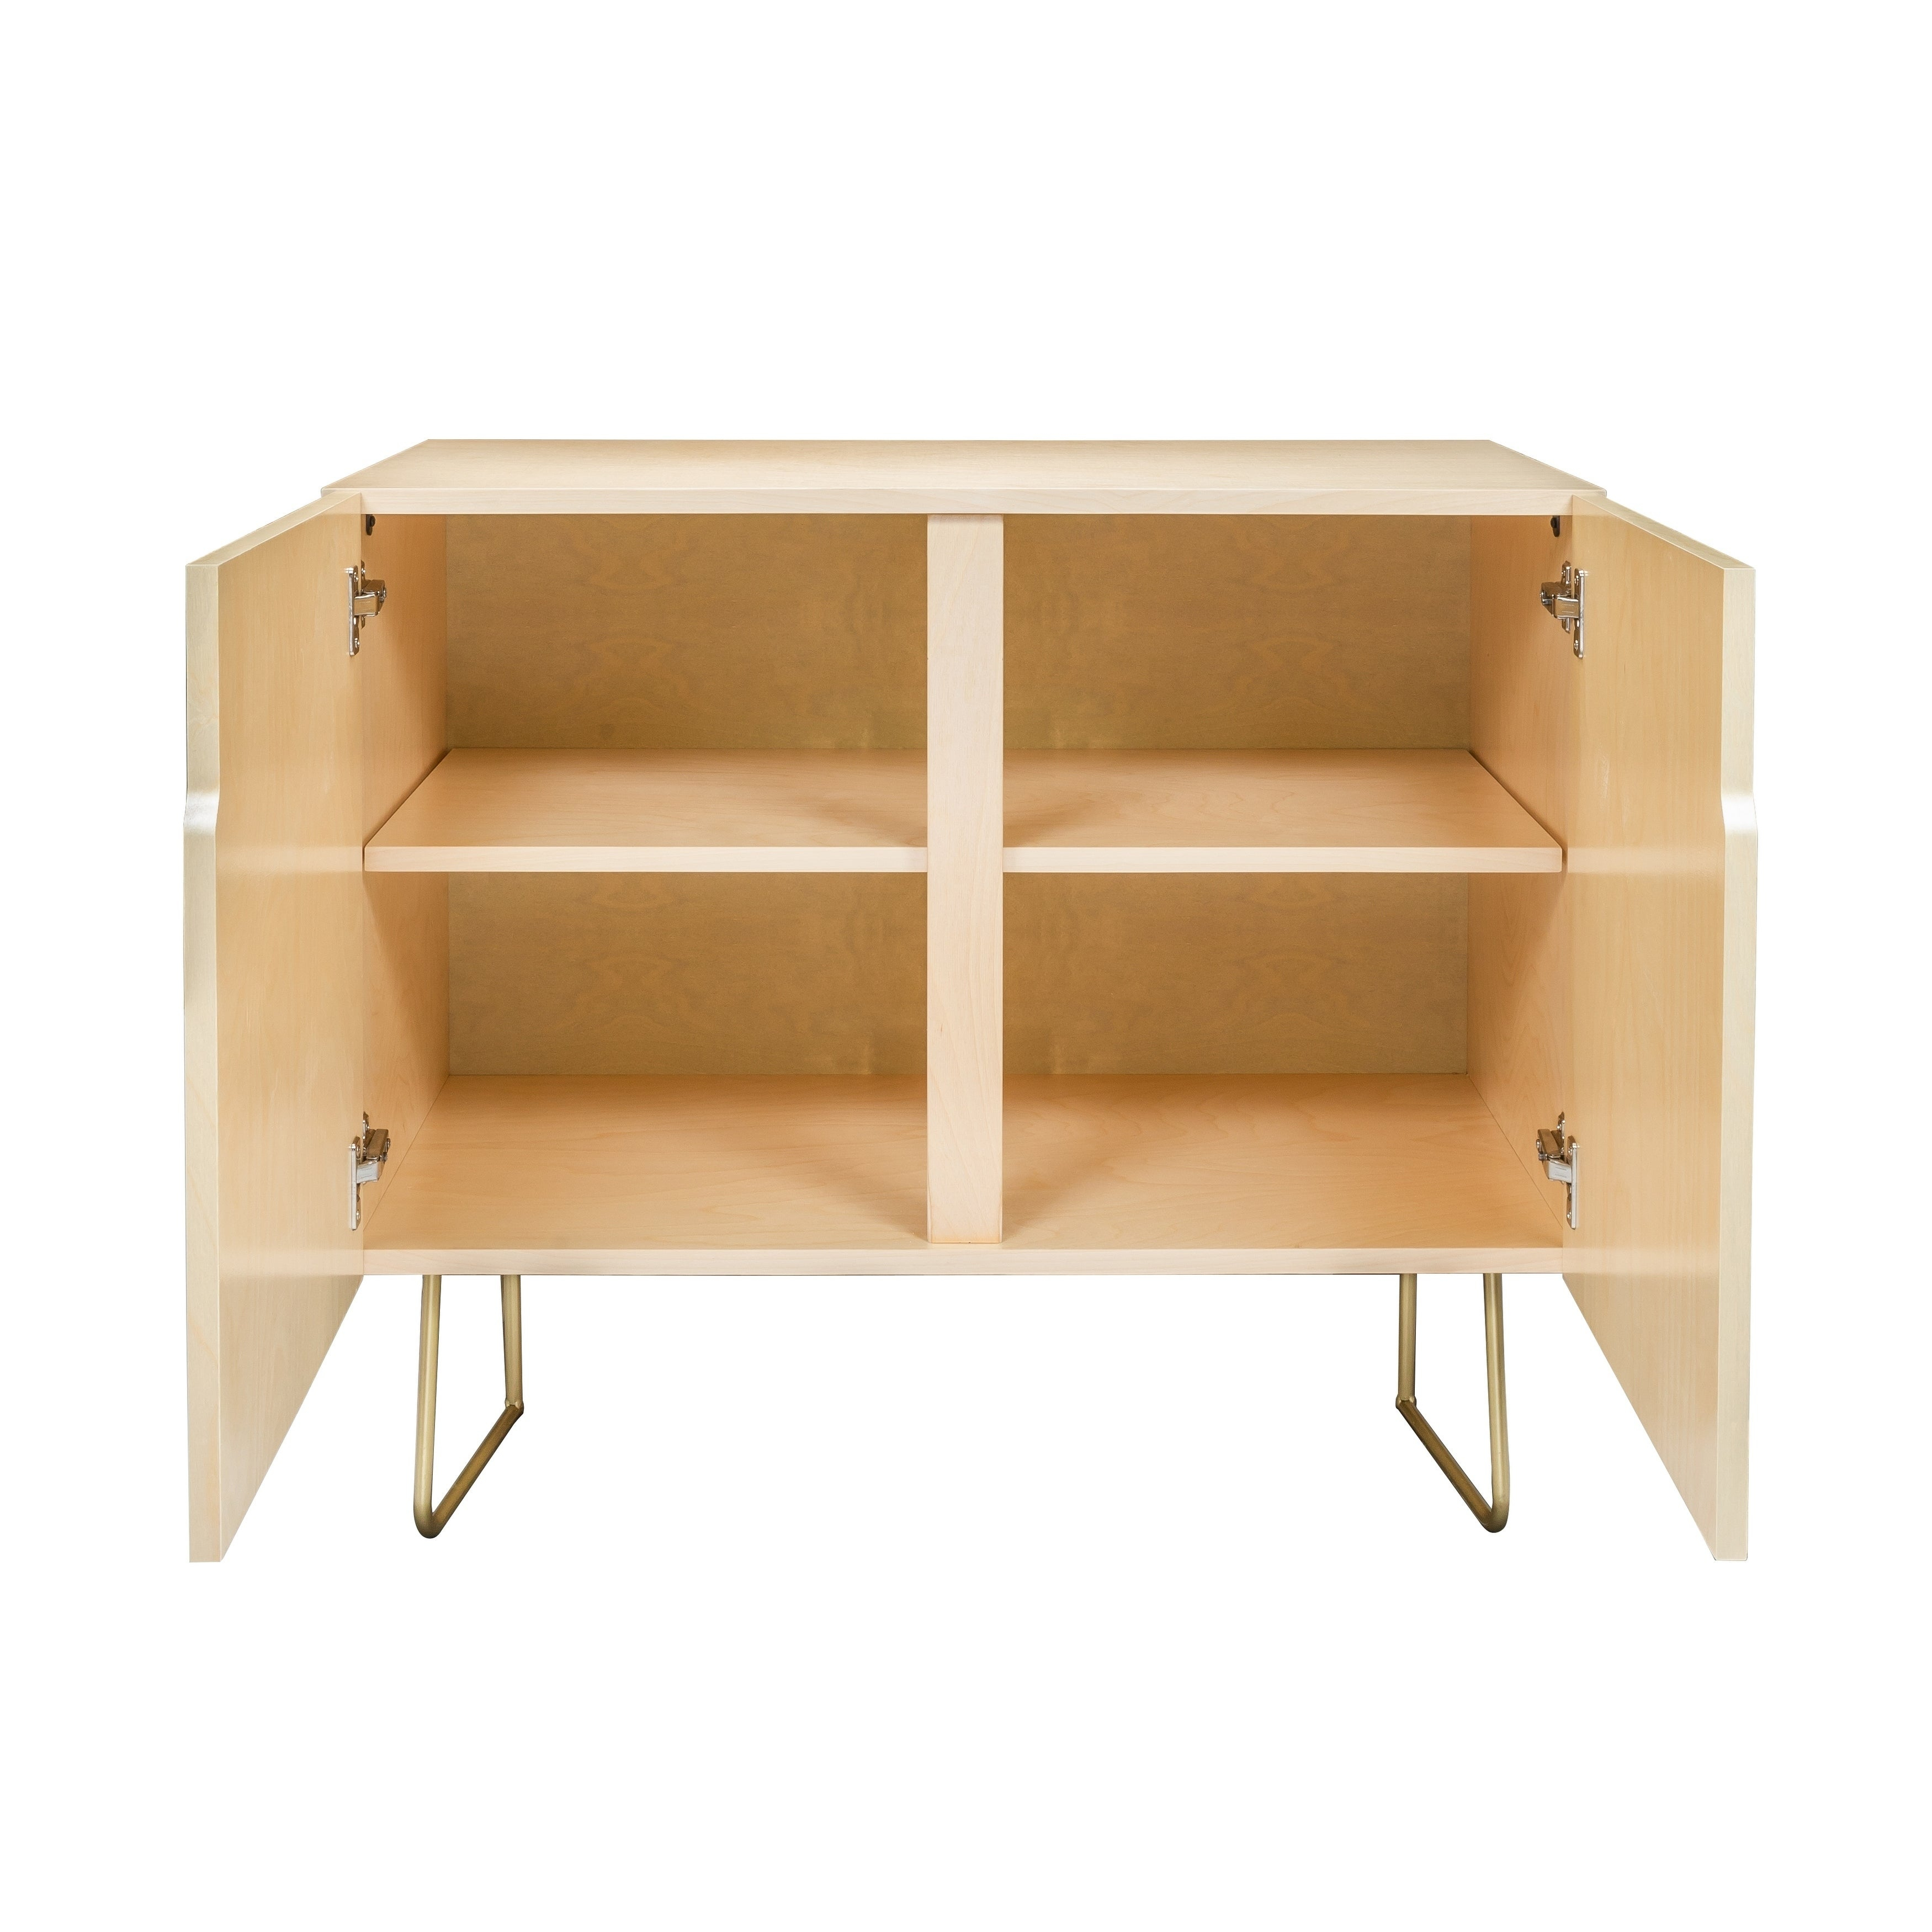 Deny Designs Pale Pink Bulbs Credenza (Birch Or Walnut, 2 Leg Options) Throughout Pale Pink Bulbs Credenzas (Gallery 8 of 30)